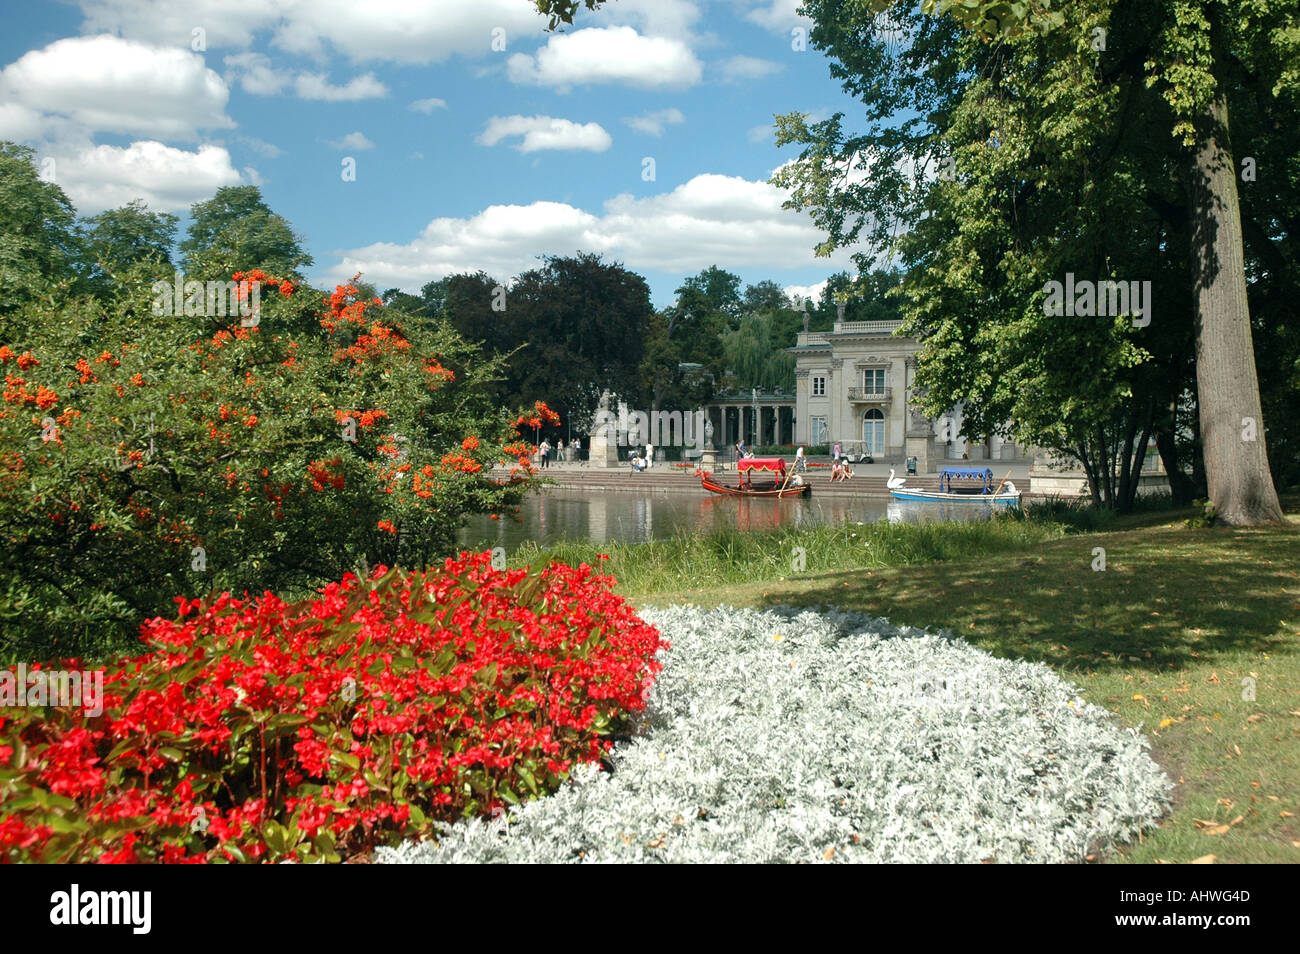 Palace On The Water In Royal Lazienki Park In Warsaw Poland